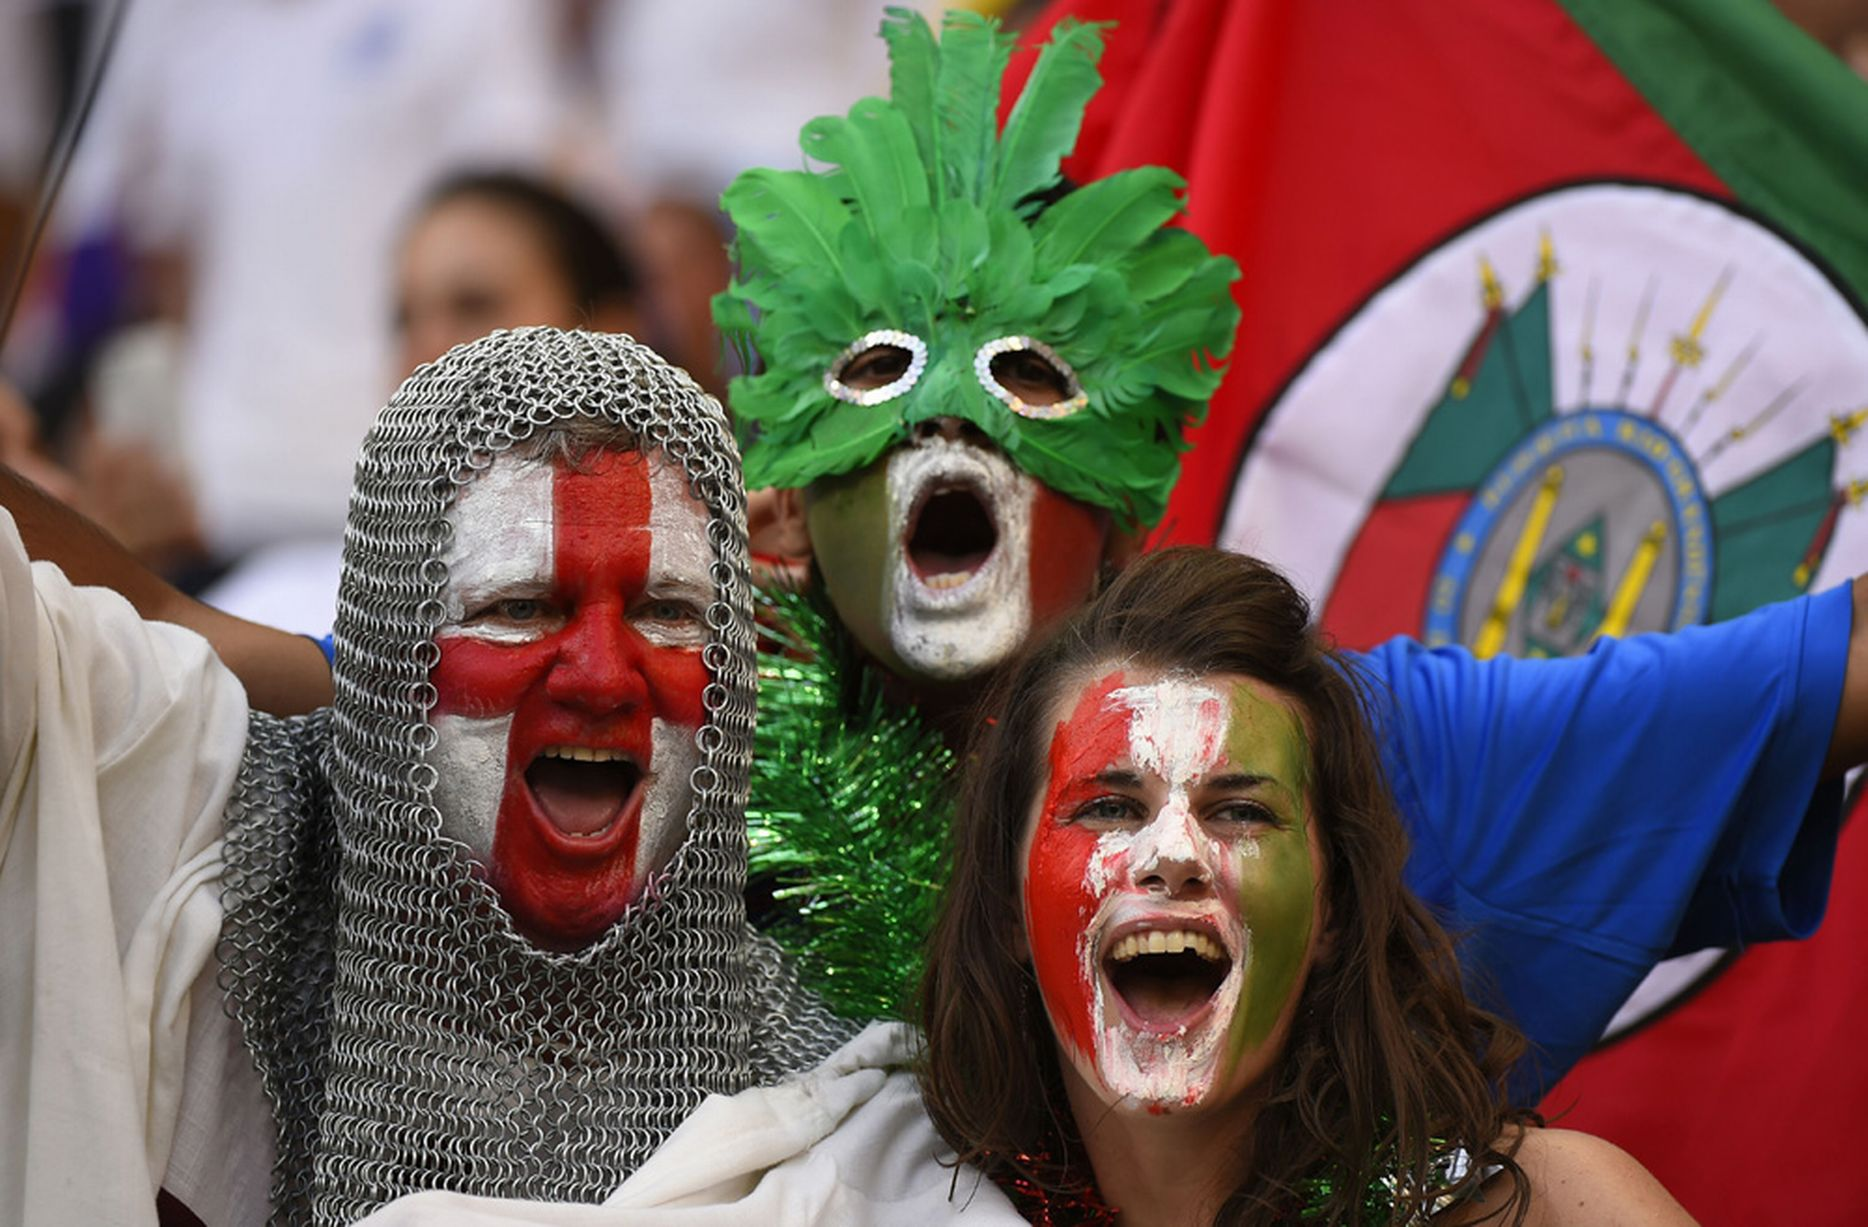 Evidence that Football Fans are Secretly Cosplay Enthusiasts